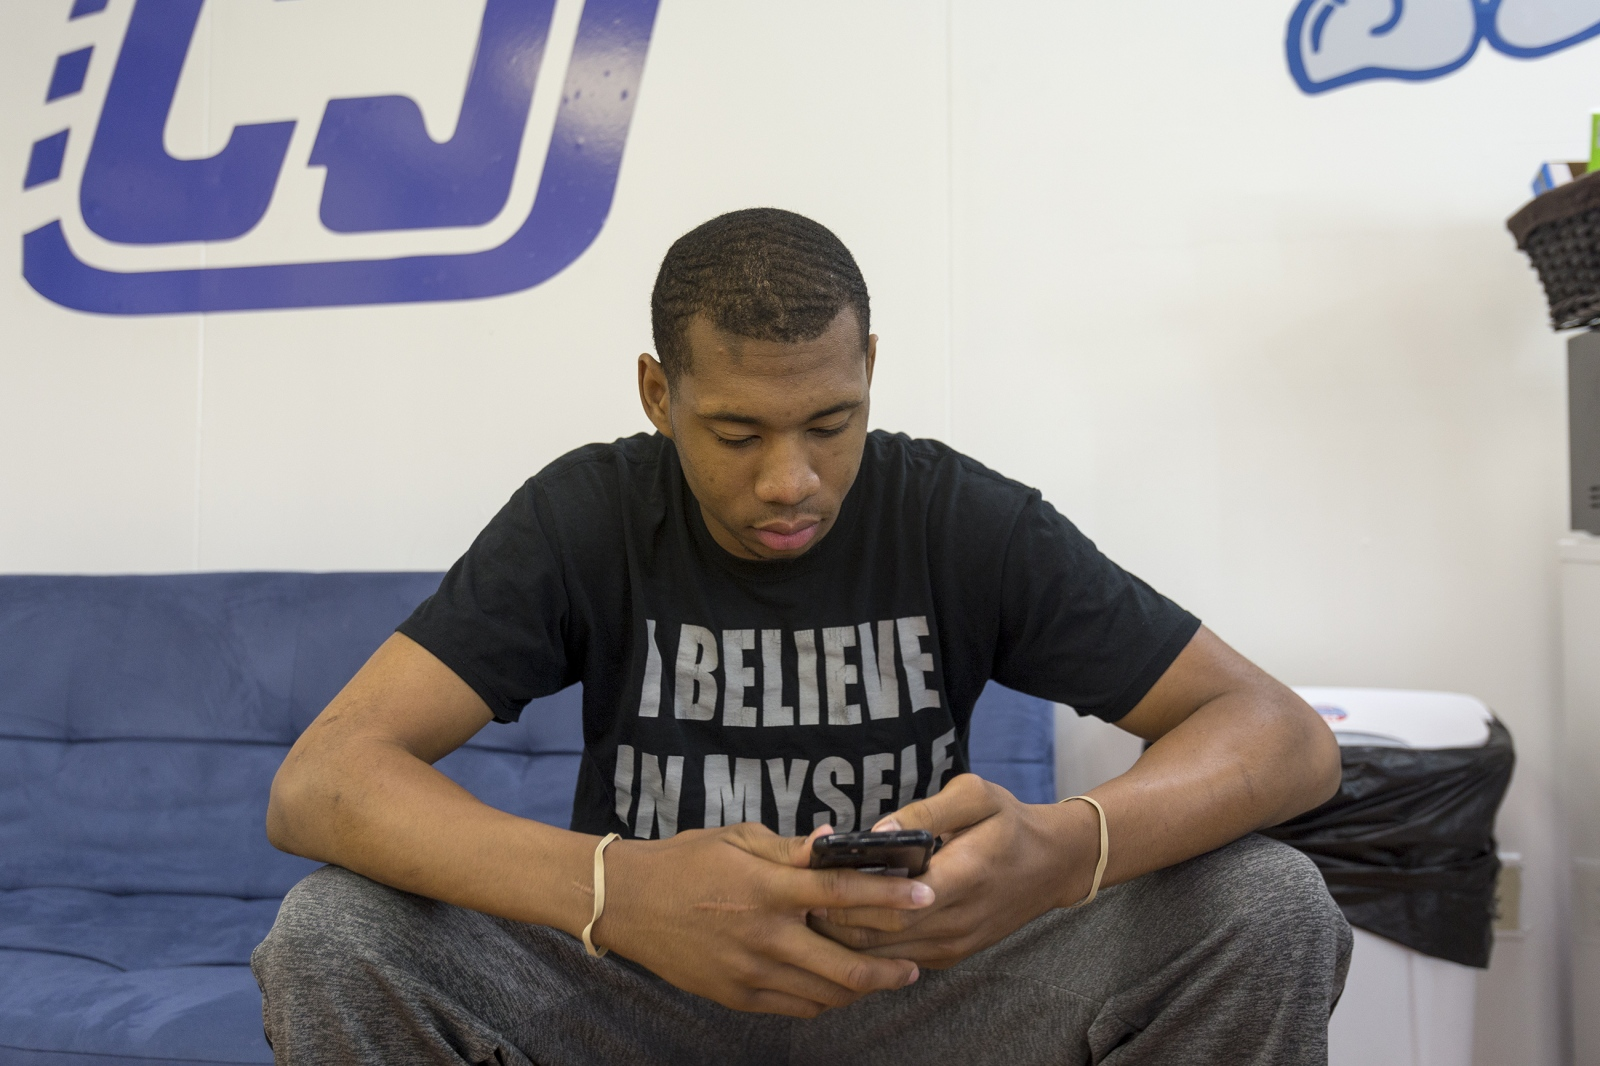 """""""I believe in myself,"""" reads Michael Green's t-shirt as he checks his phone waiting for a haircut. Michael is preparing for his senior prom, weeks before he graduates and then heads to college on a basketball scholarship."""